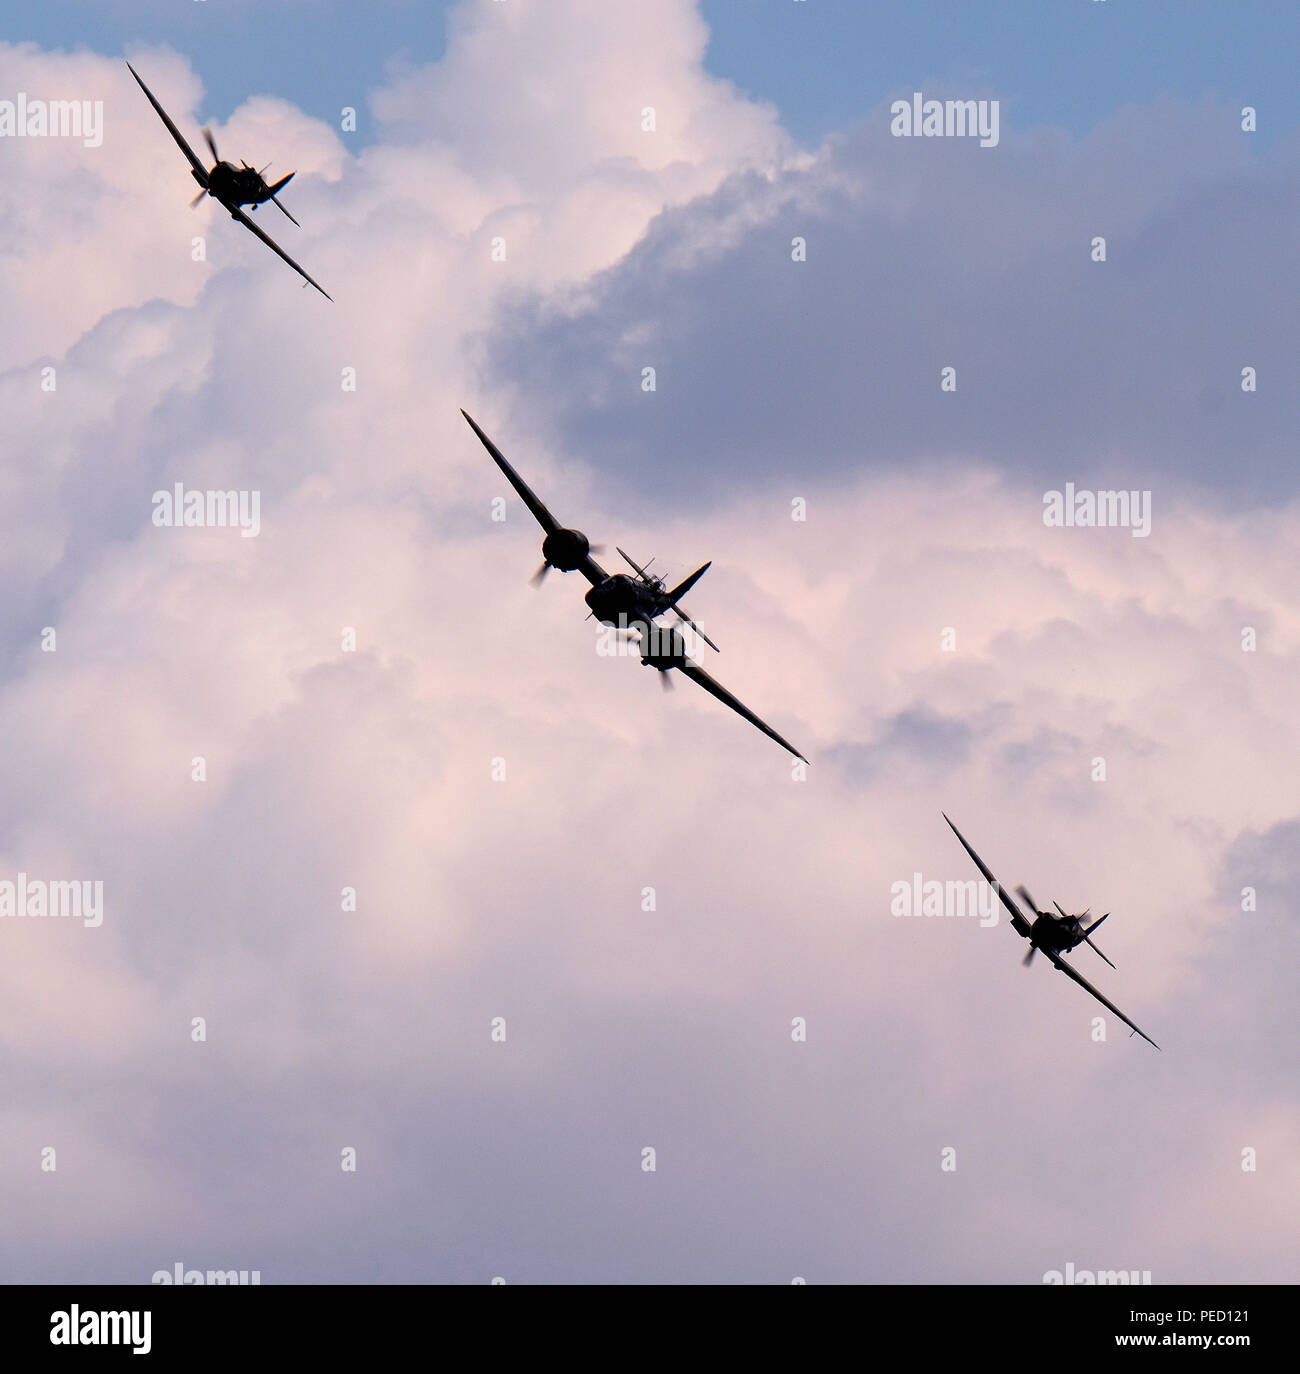 The Bristol Blenheim is a British light bomber aircraft designed and built by the Bristol Aeroplane Company. Used extensively in early war years. - Stock Image